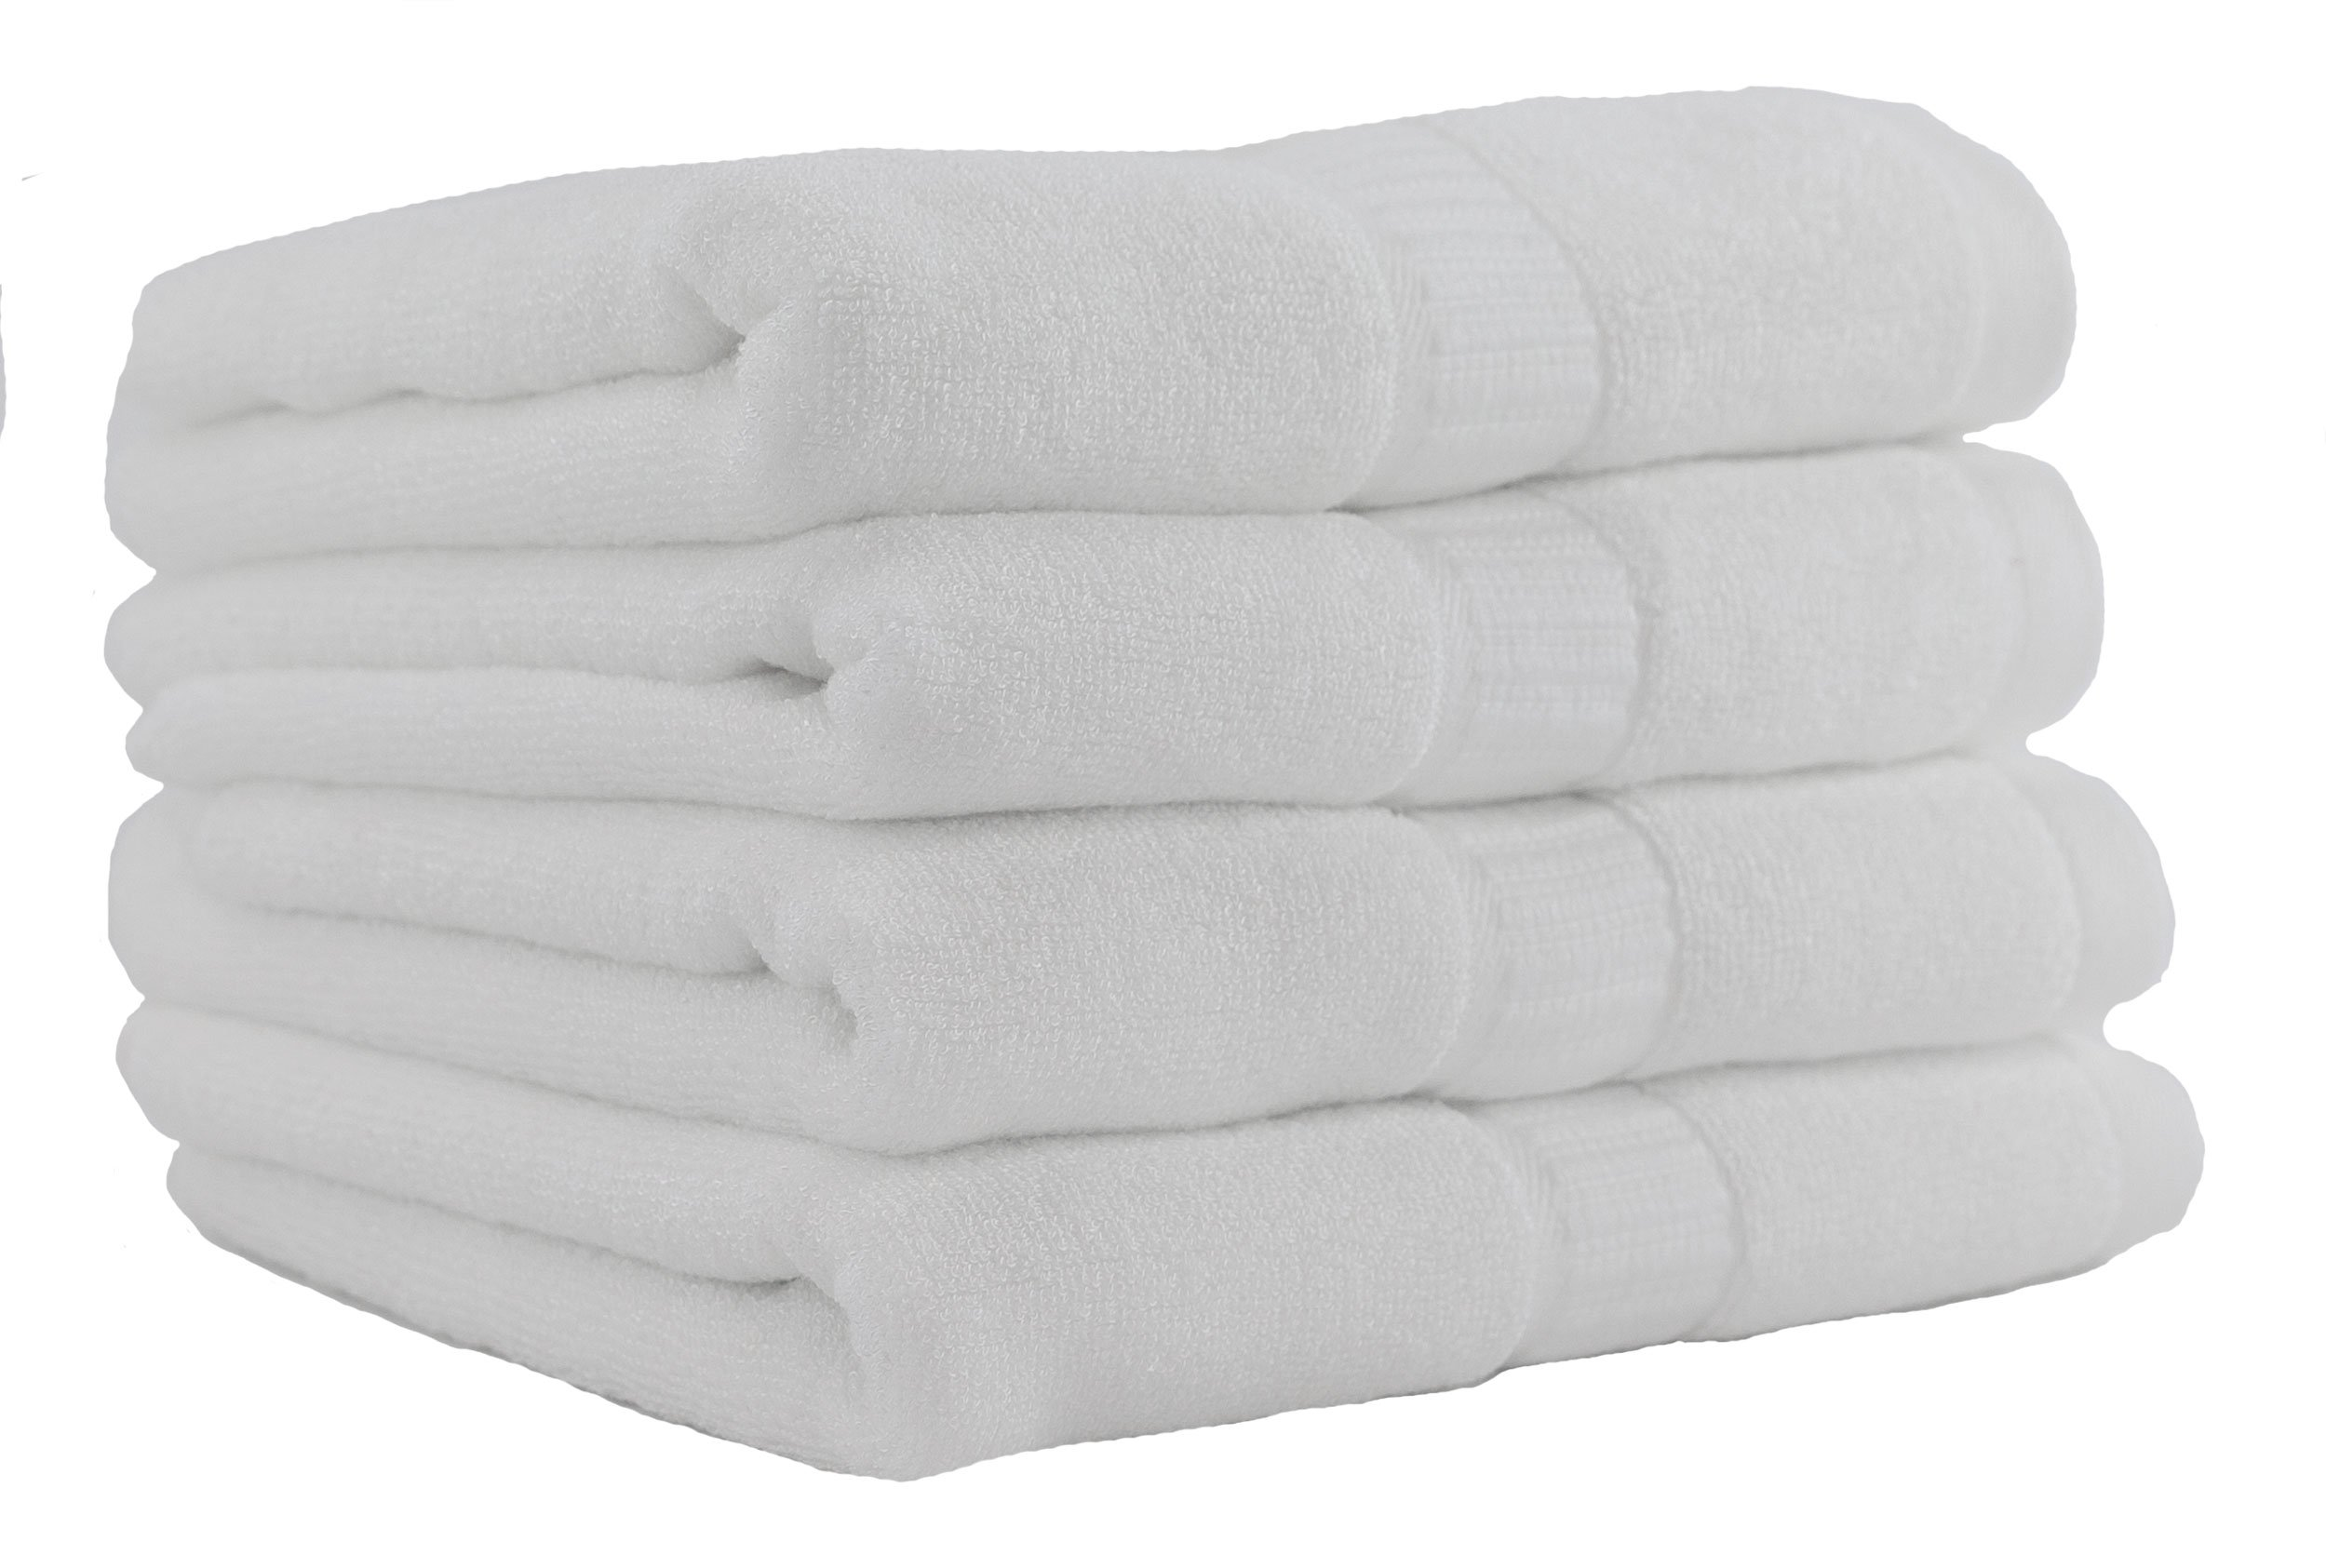 Hotel Sheets Direct 100% Bamboo Hand Towels, 4 Piece Set - Unbelievably Soft, Hypoallergenic, Anti-Fungal 13 x 29.5 (Set of 4 Hand Towels)